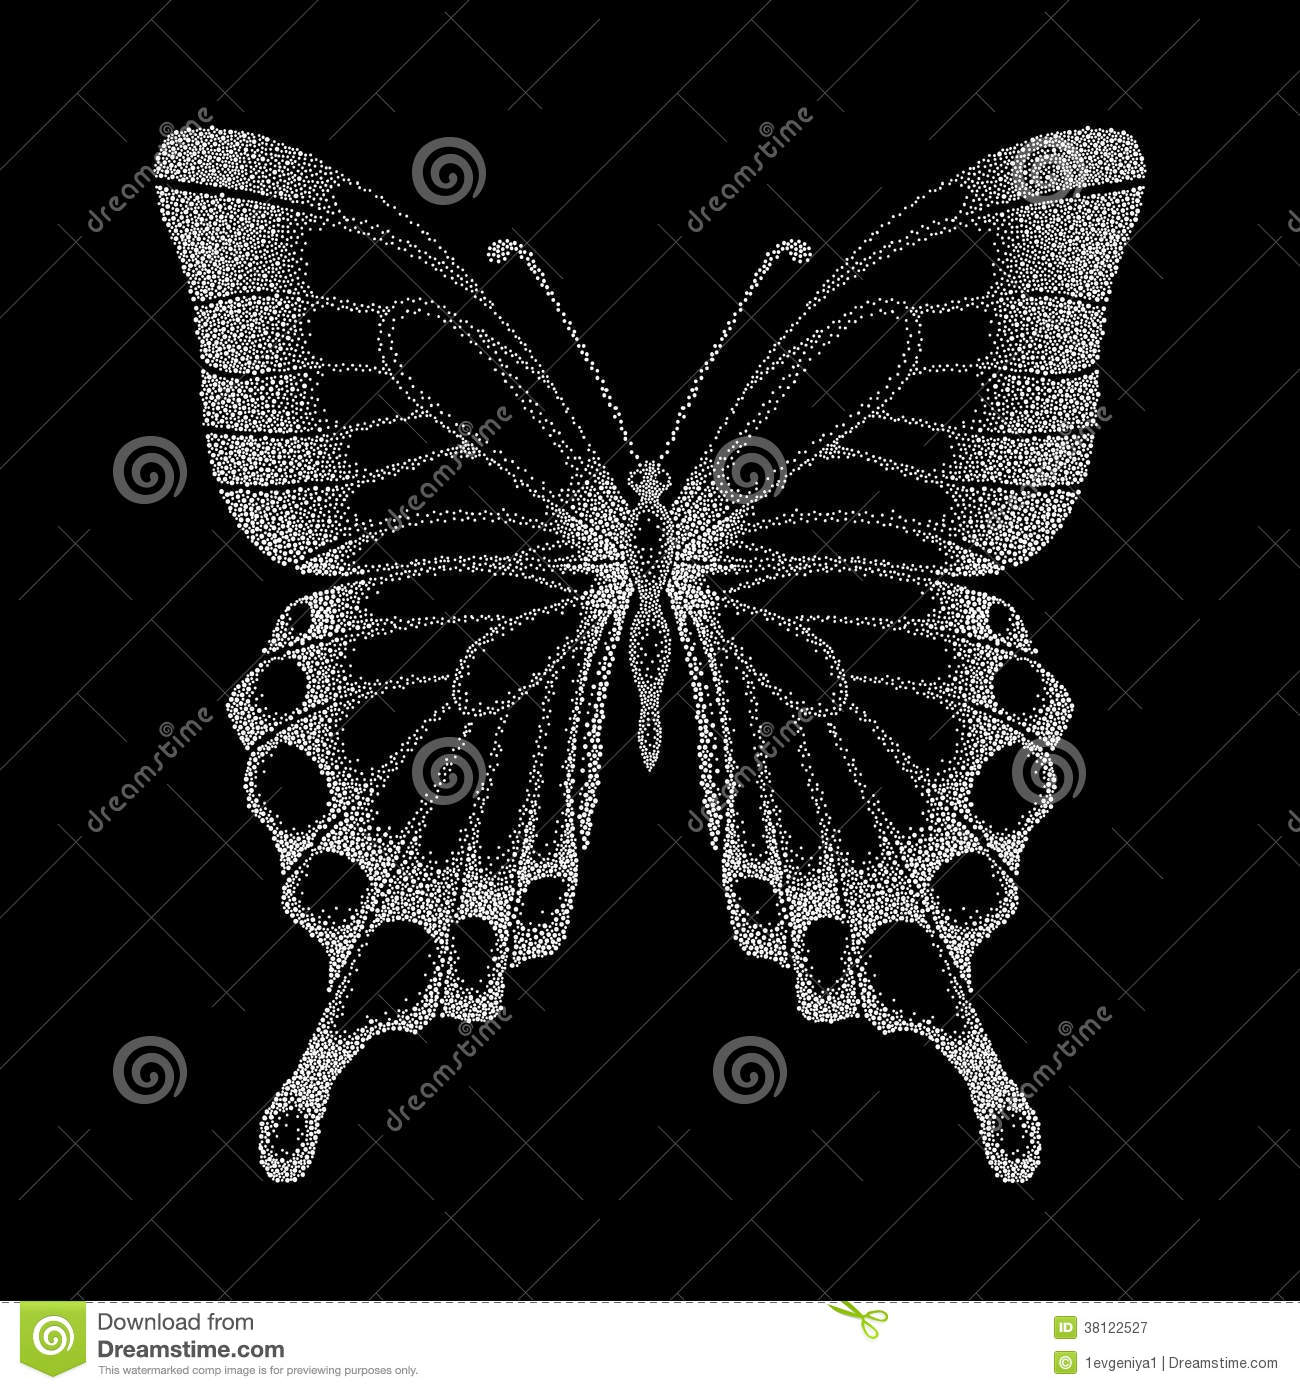 Contour Line Drawing Butterfly : Beautiful graphic black and white butterfly stock vector